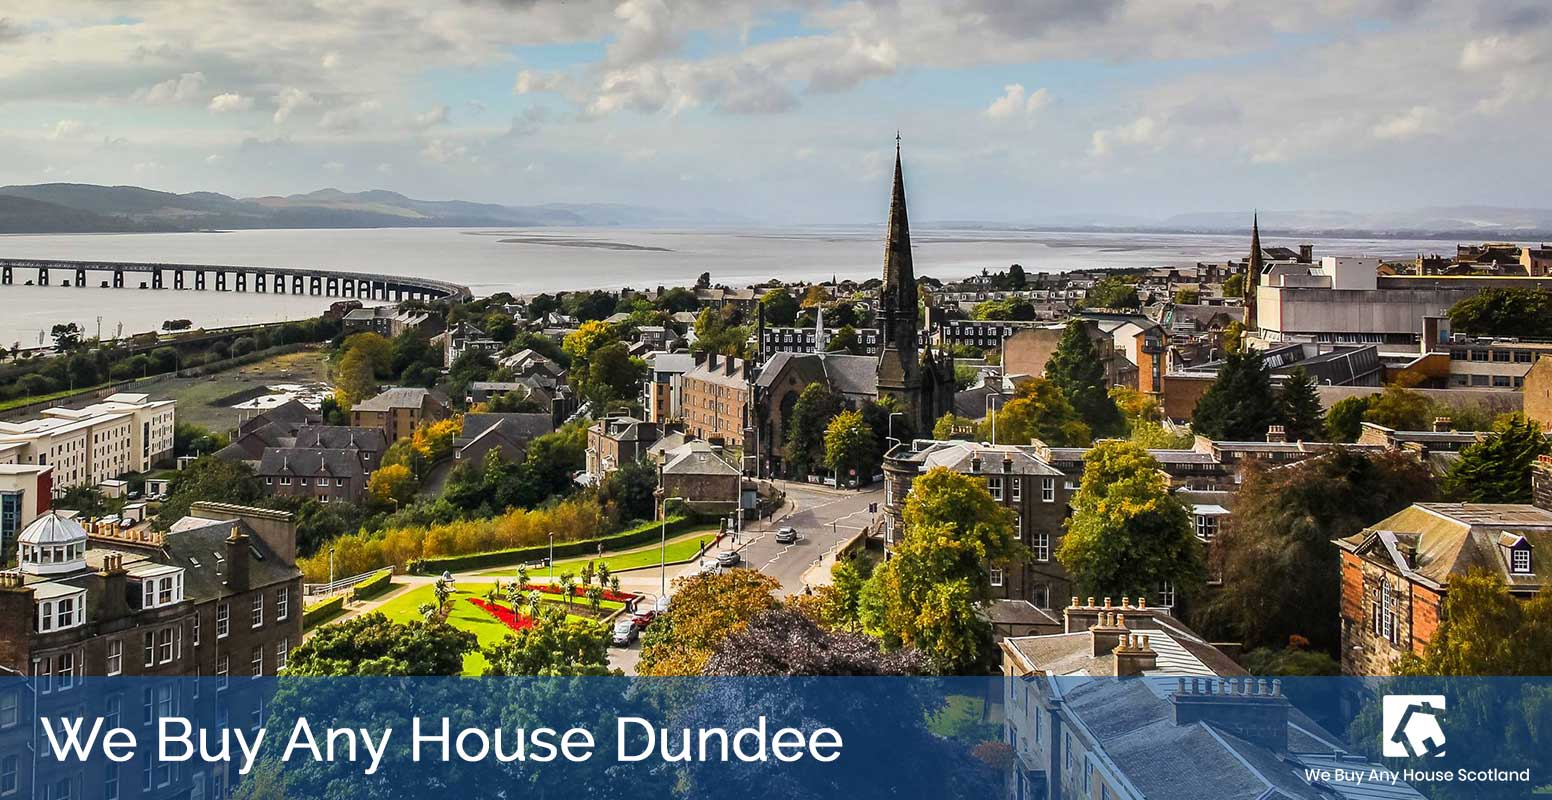 We Buy Any House Dundee